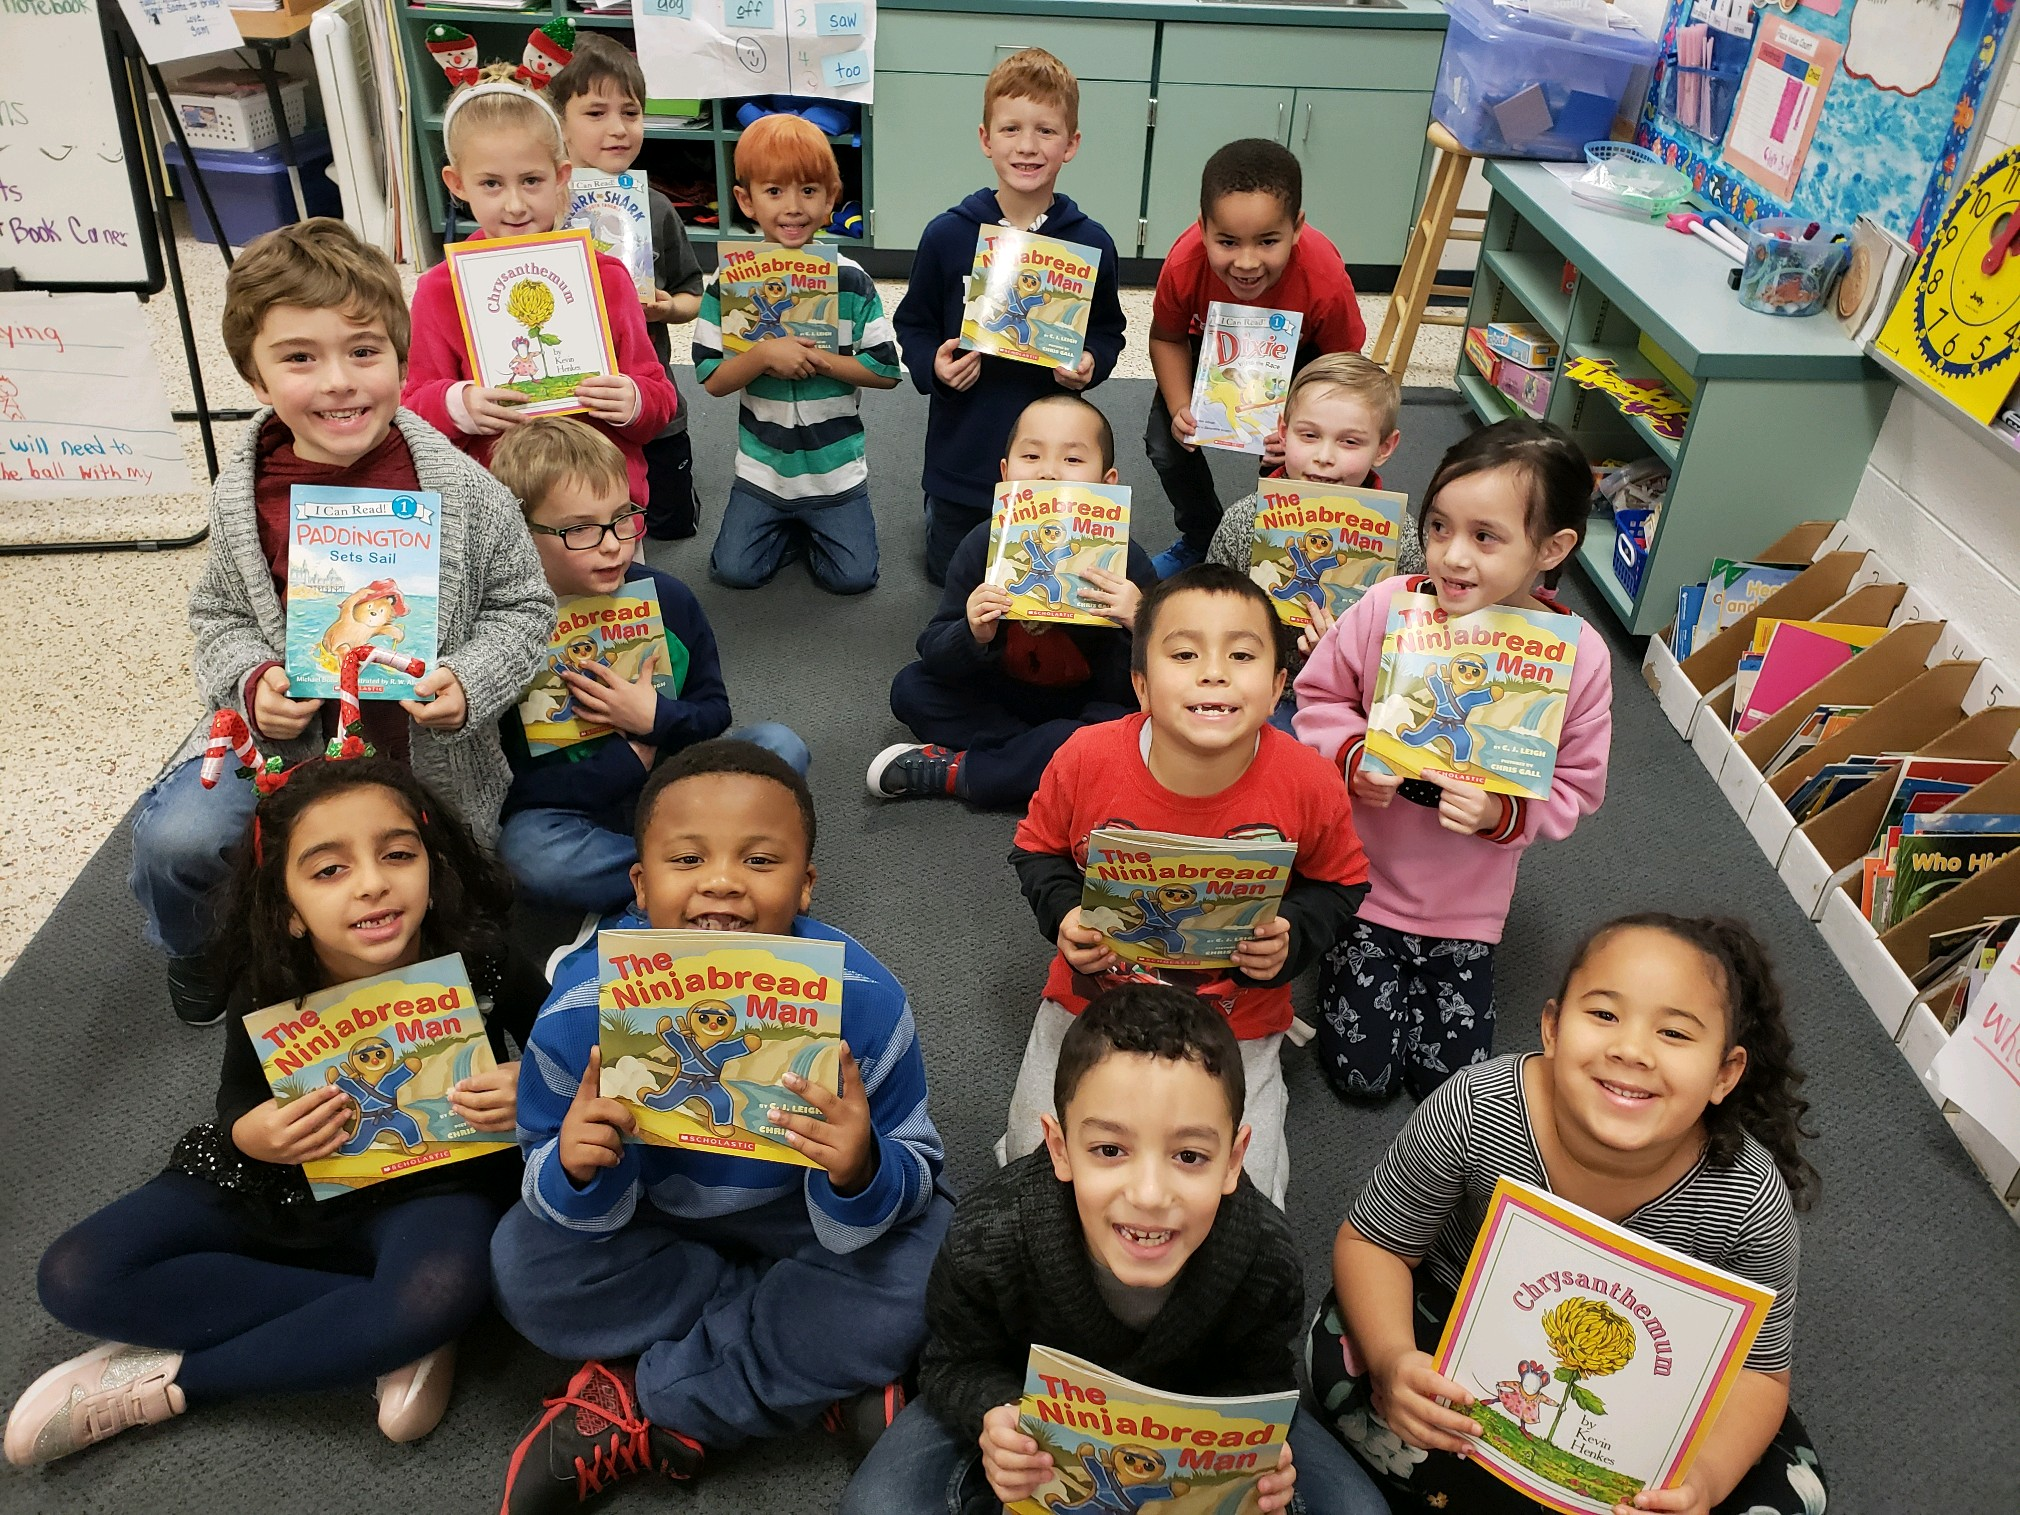 Malibu Elementary School first-graders get free books every month thanks to  donations.